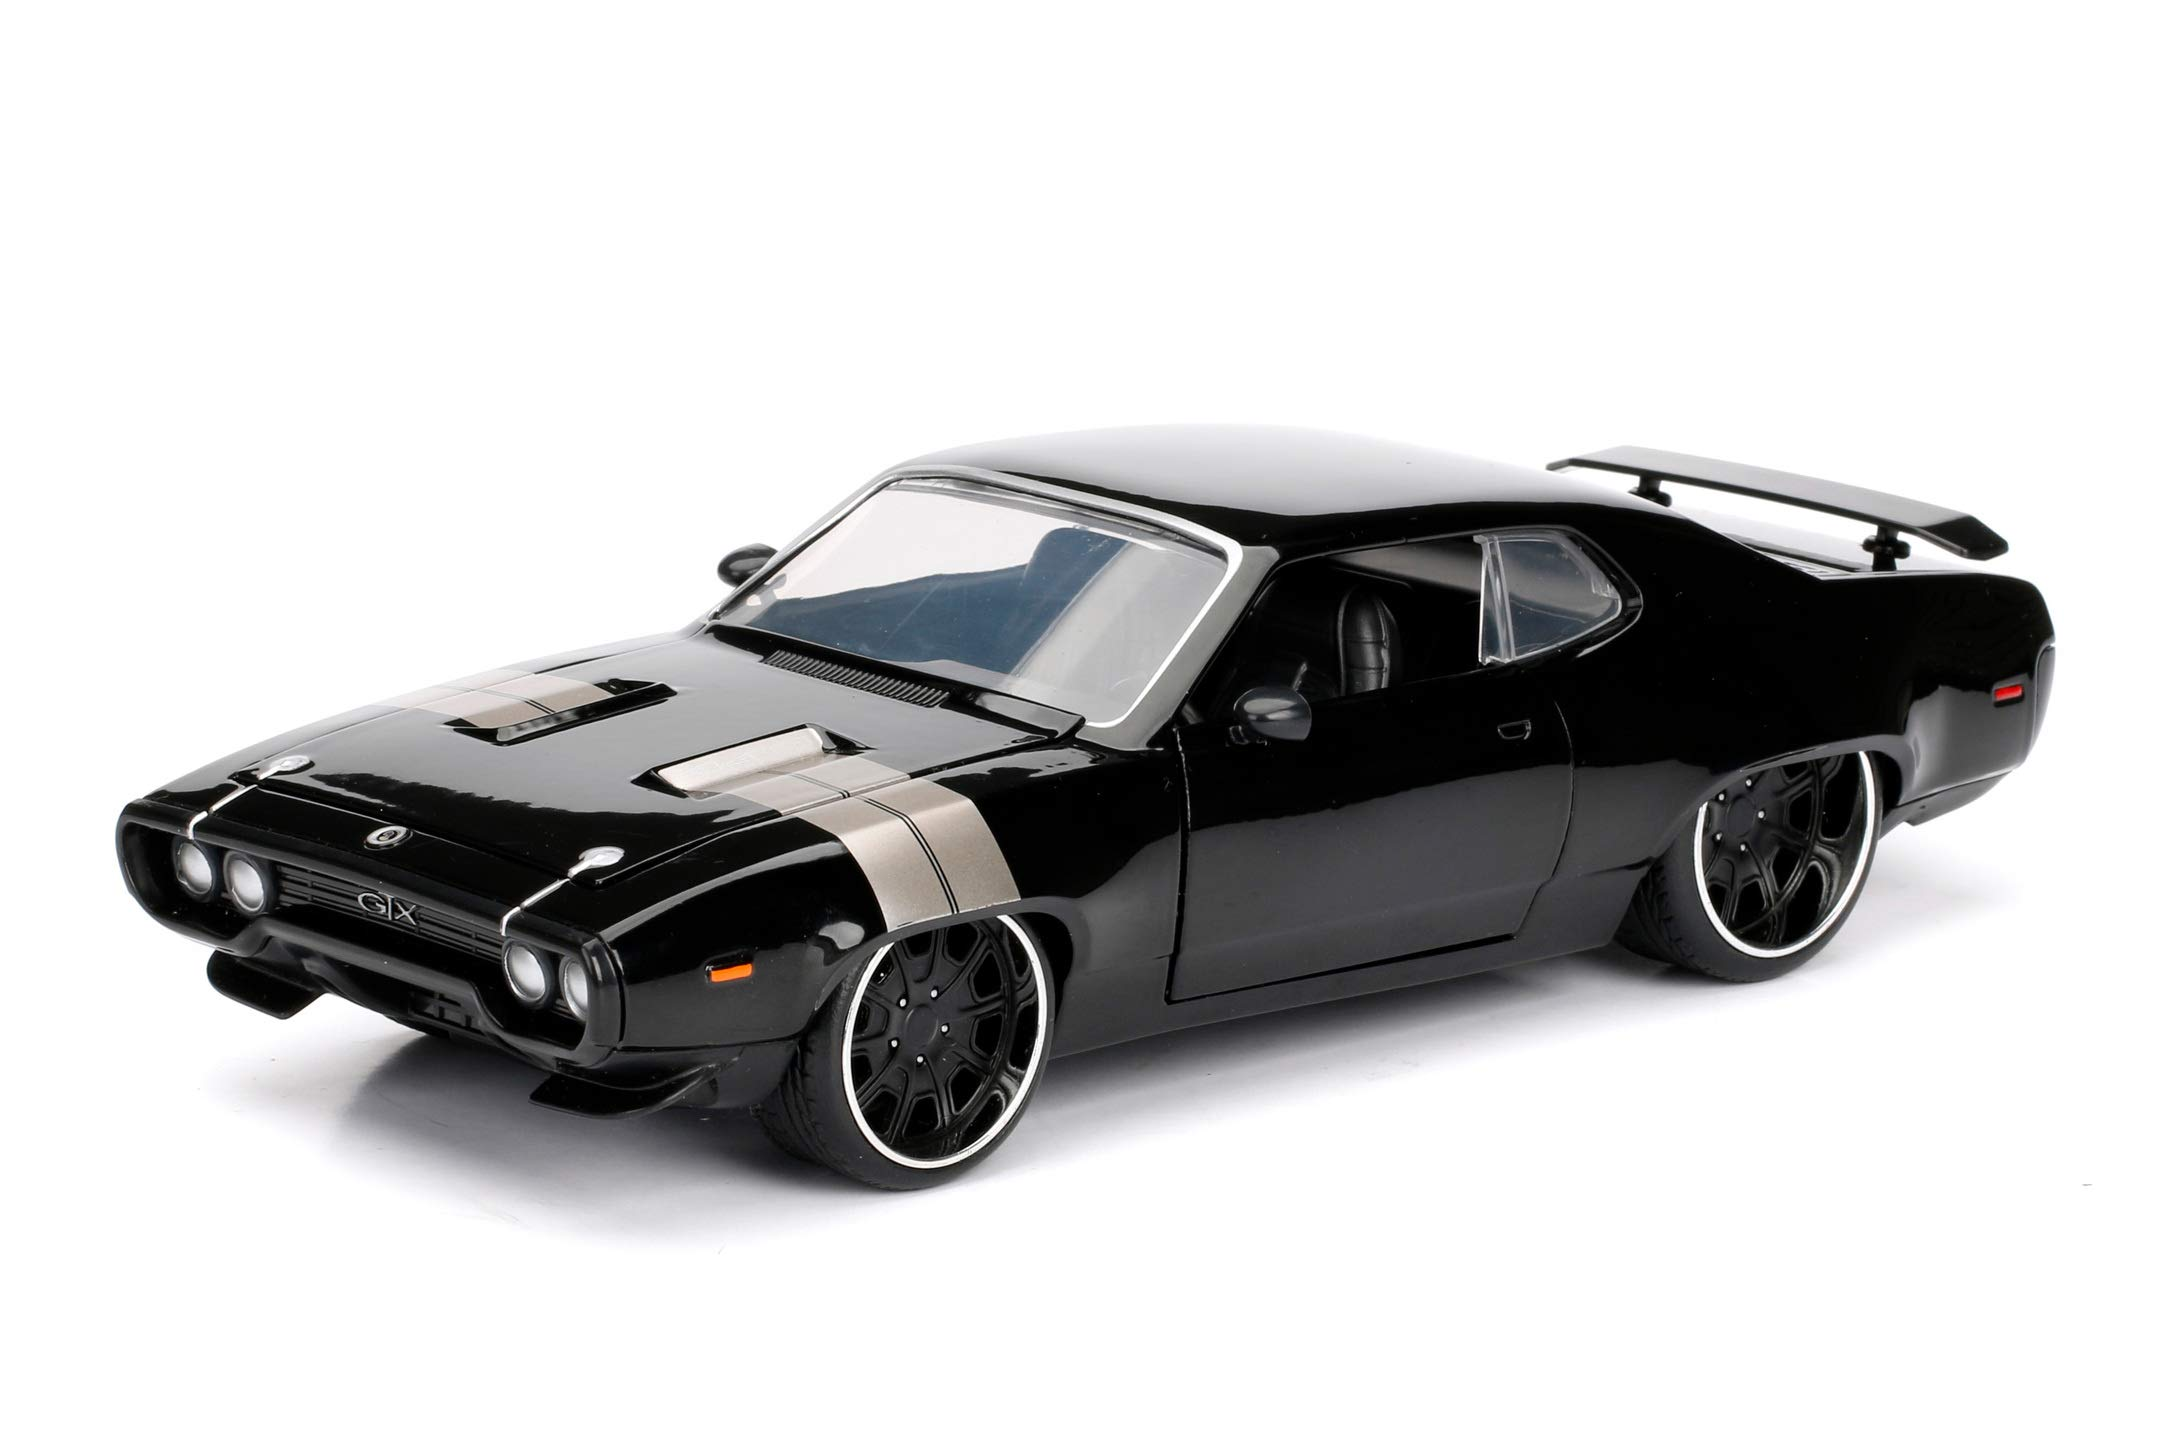 Jada Toys Fast & Furious 1:24 Dom's Plymouth GTX Die-cast Car, Toys for Kids and Adults, Black, Standard